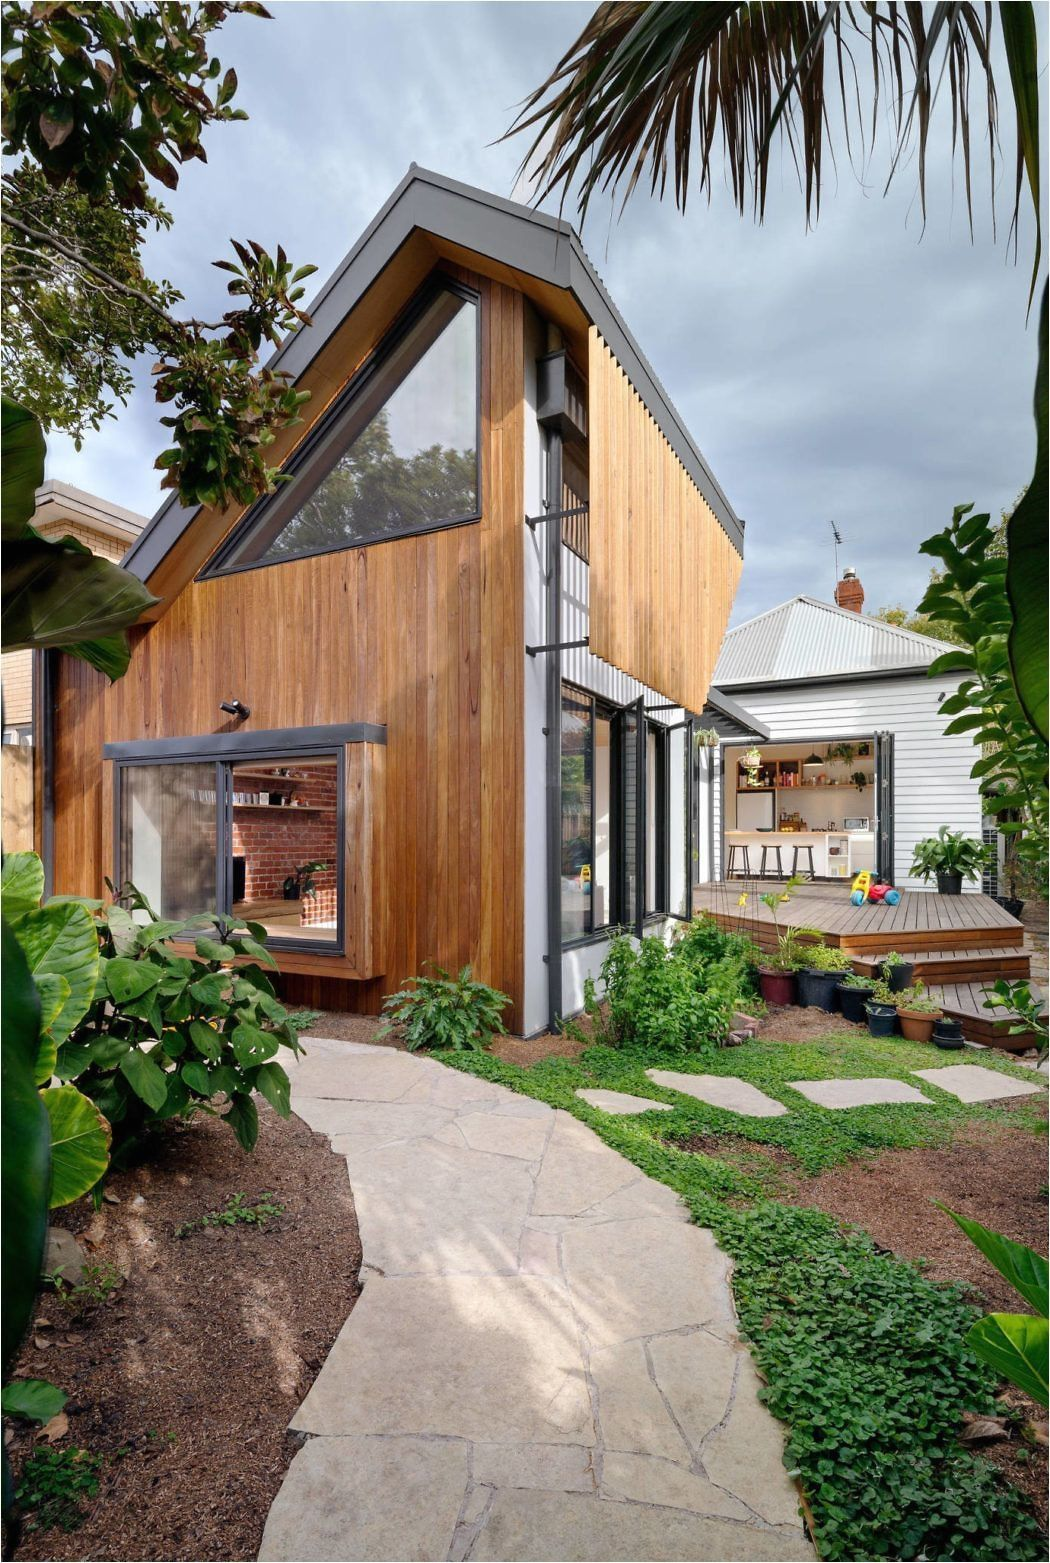 Build A House For 150k 2021 In 2020 Green Building Architecture Architects Melbourne Architecture